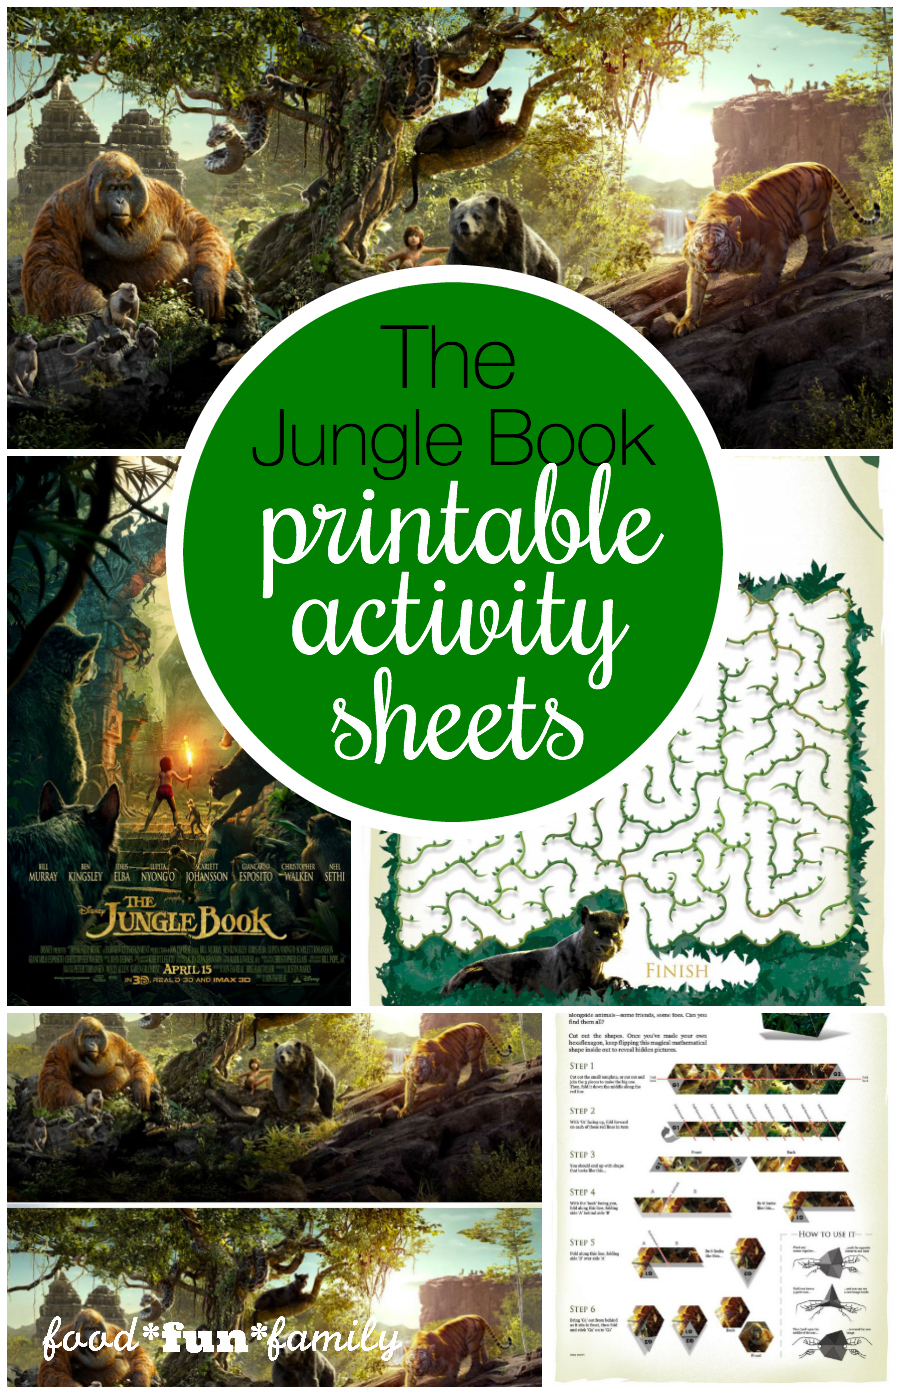 The Jungle Book Printable Activity Sheets